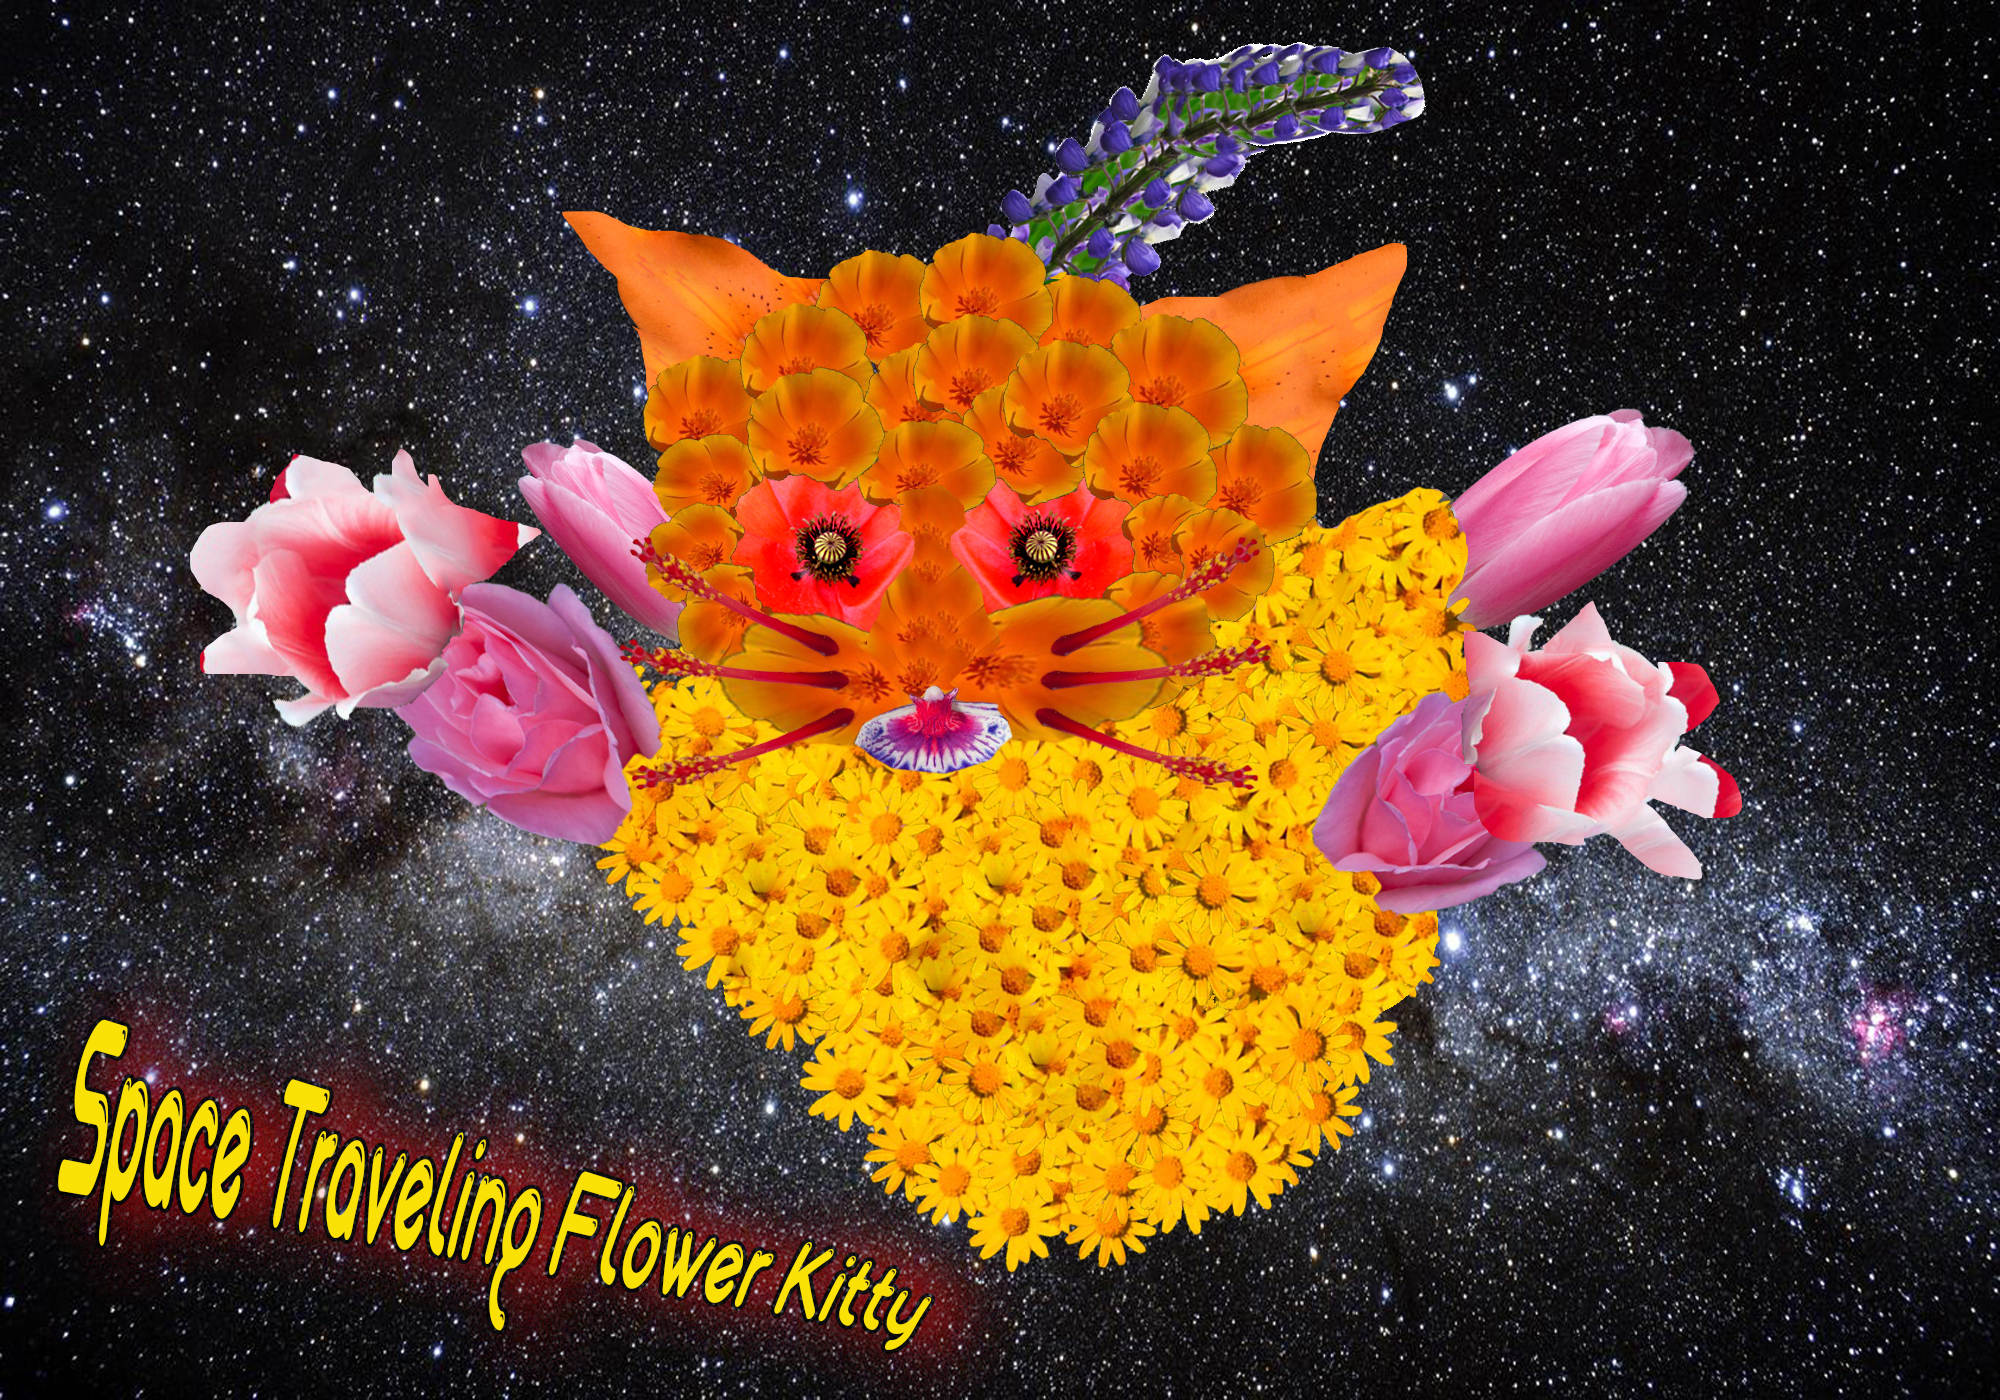 Elorza_N_C1Project_Space KittyFlattened200ppi